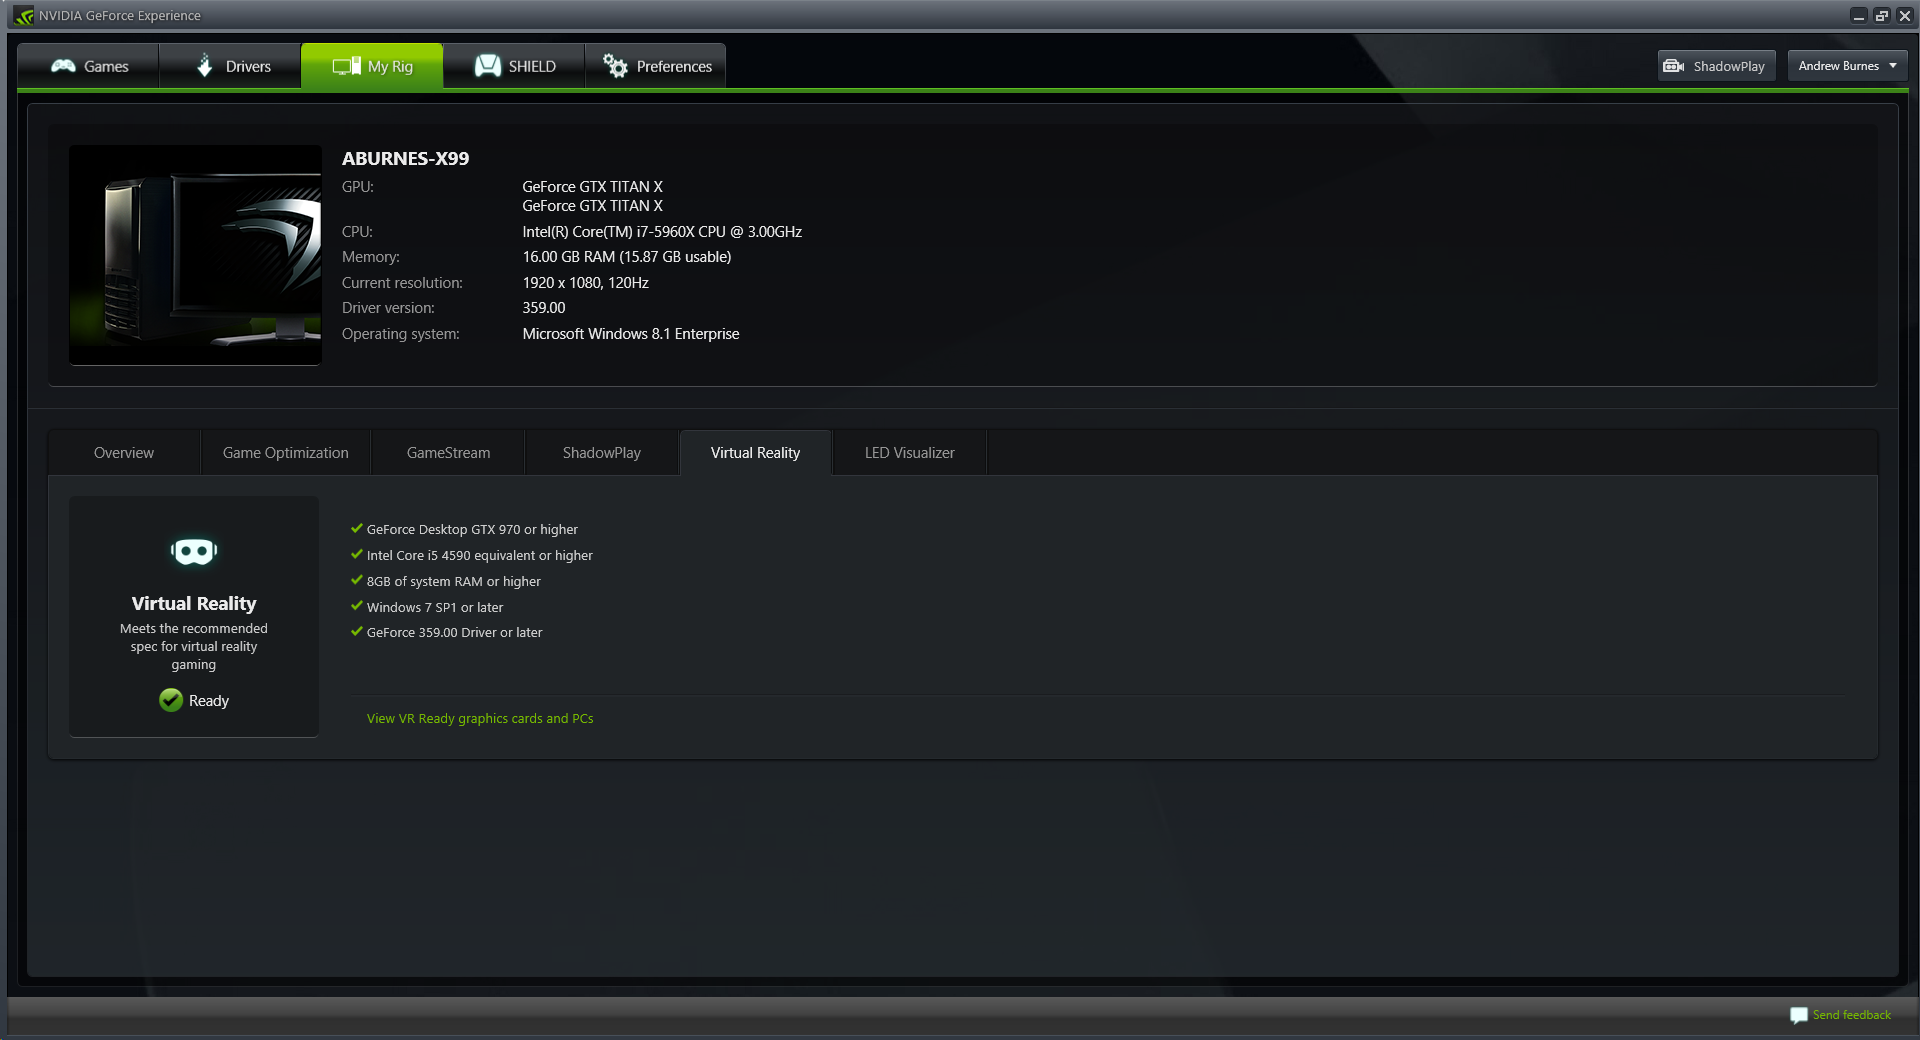 how to open geforce experiance in gamed